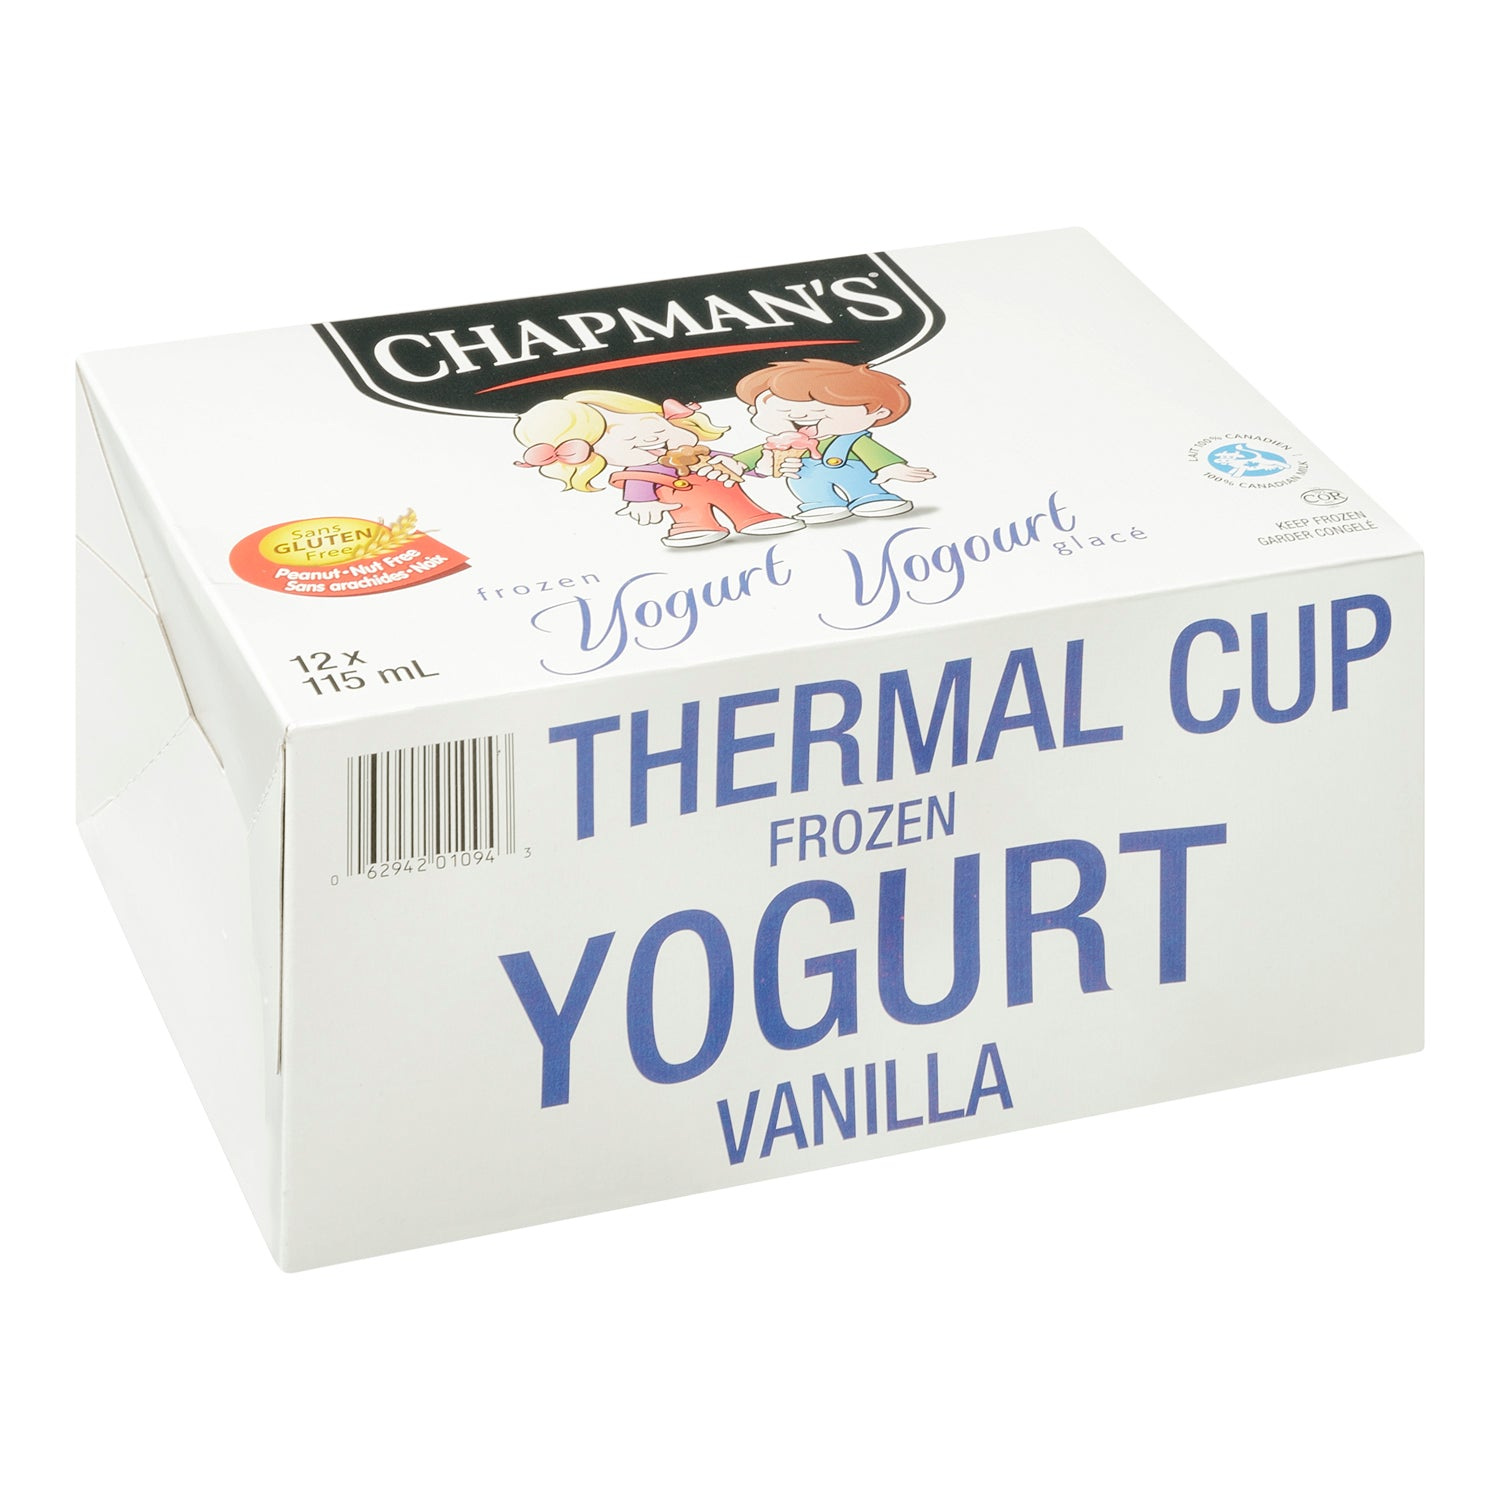 Chapman's Vanilla Yogurt Cups 115 ml - 24 Pack [$0.46/cup]